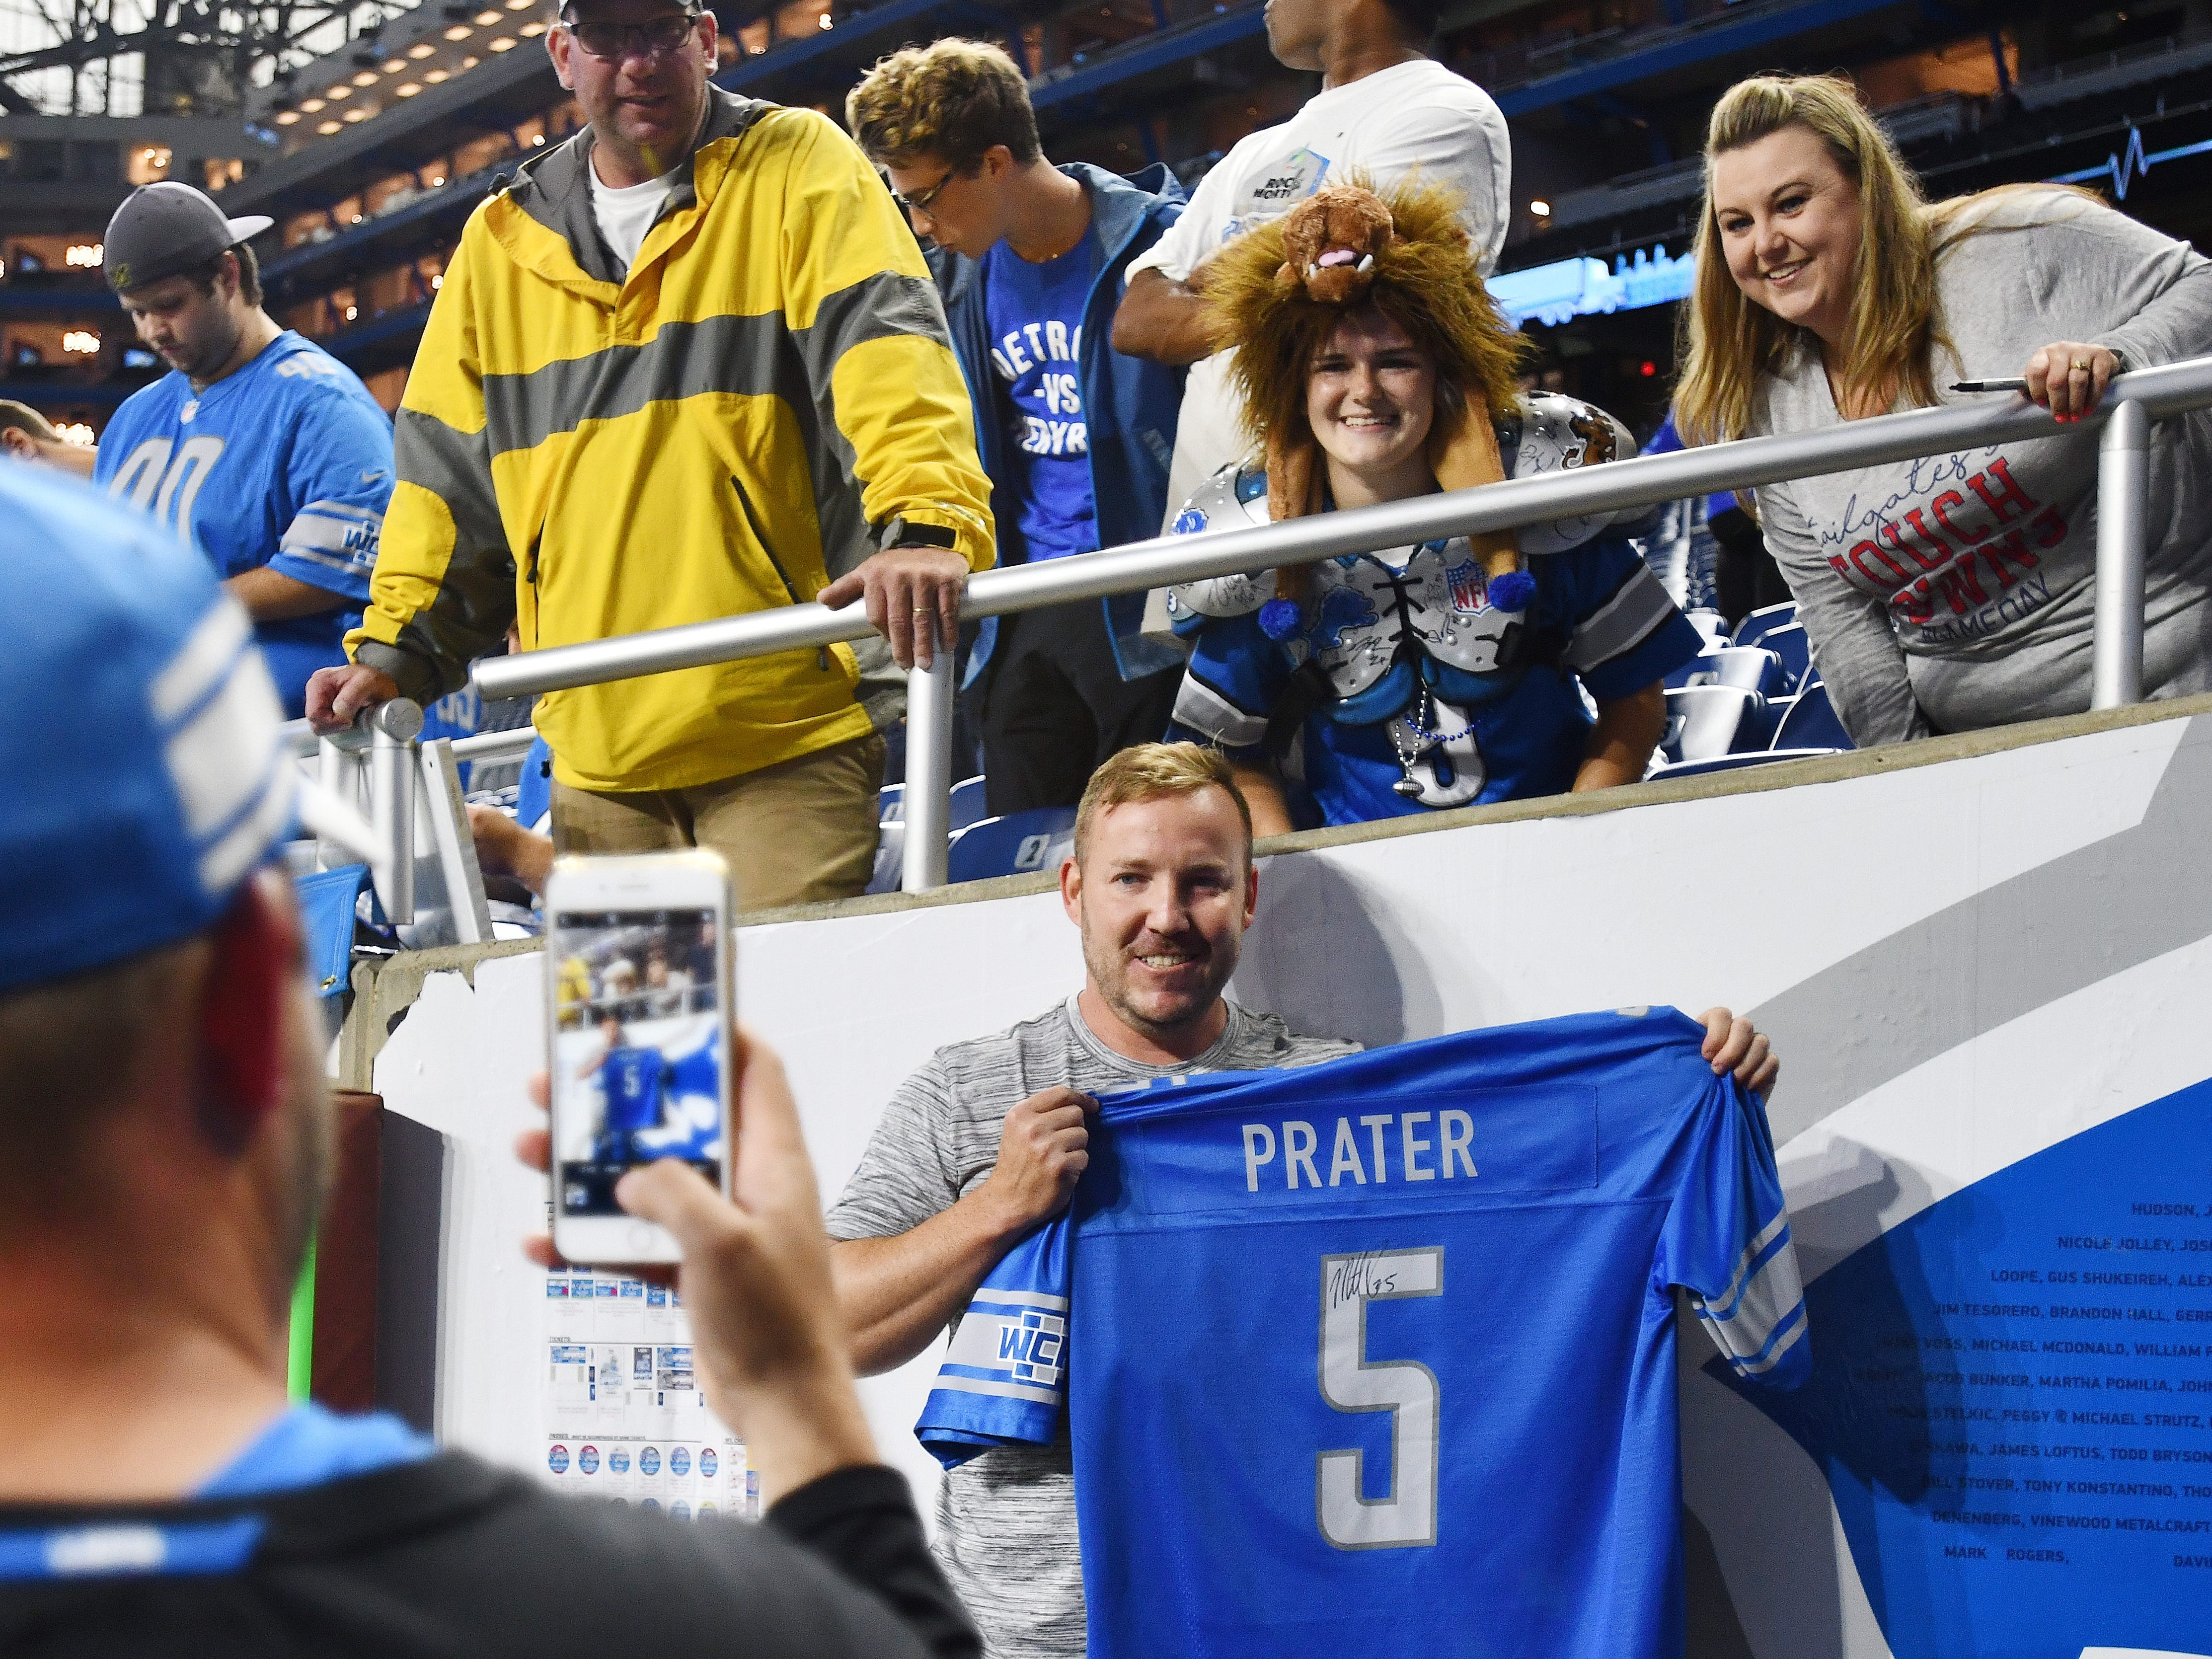 Lions kicker Matt Prater poses for a picture with his jersey for fans after warming up.